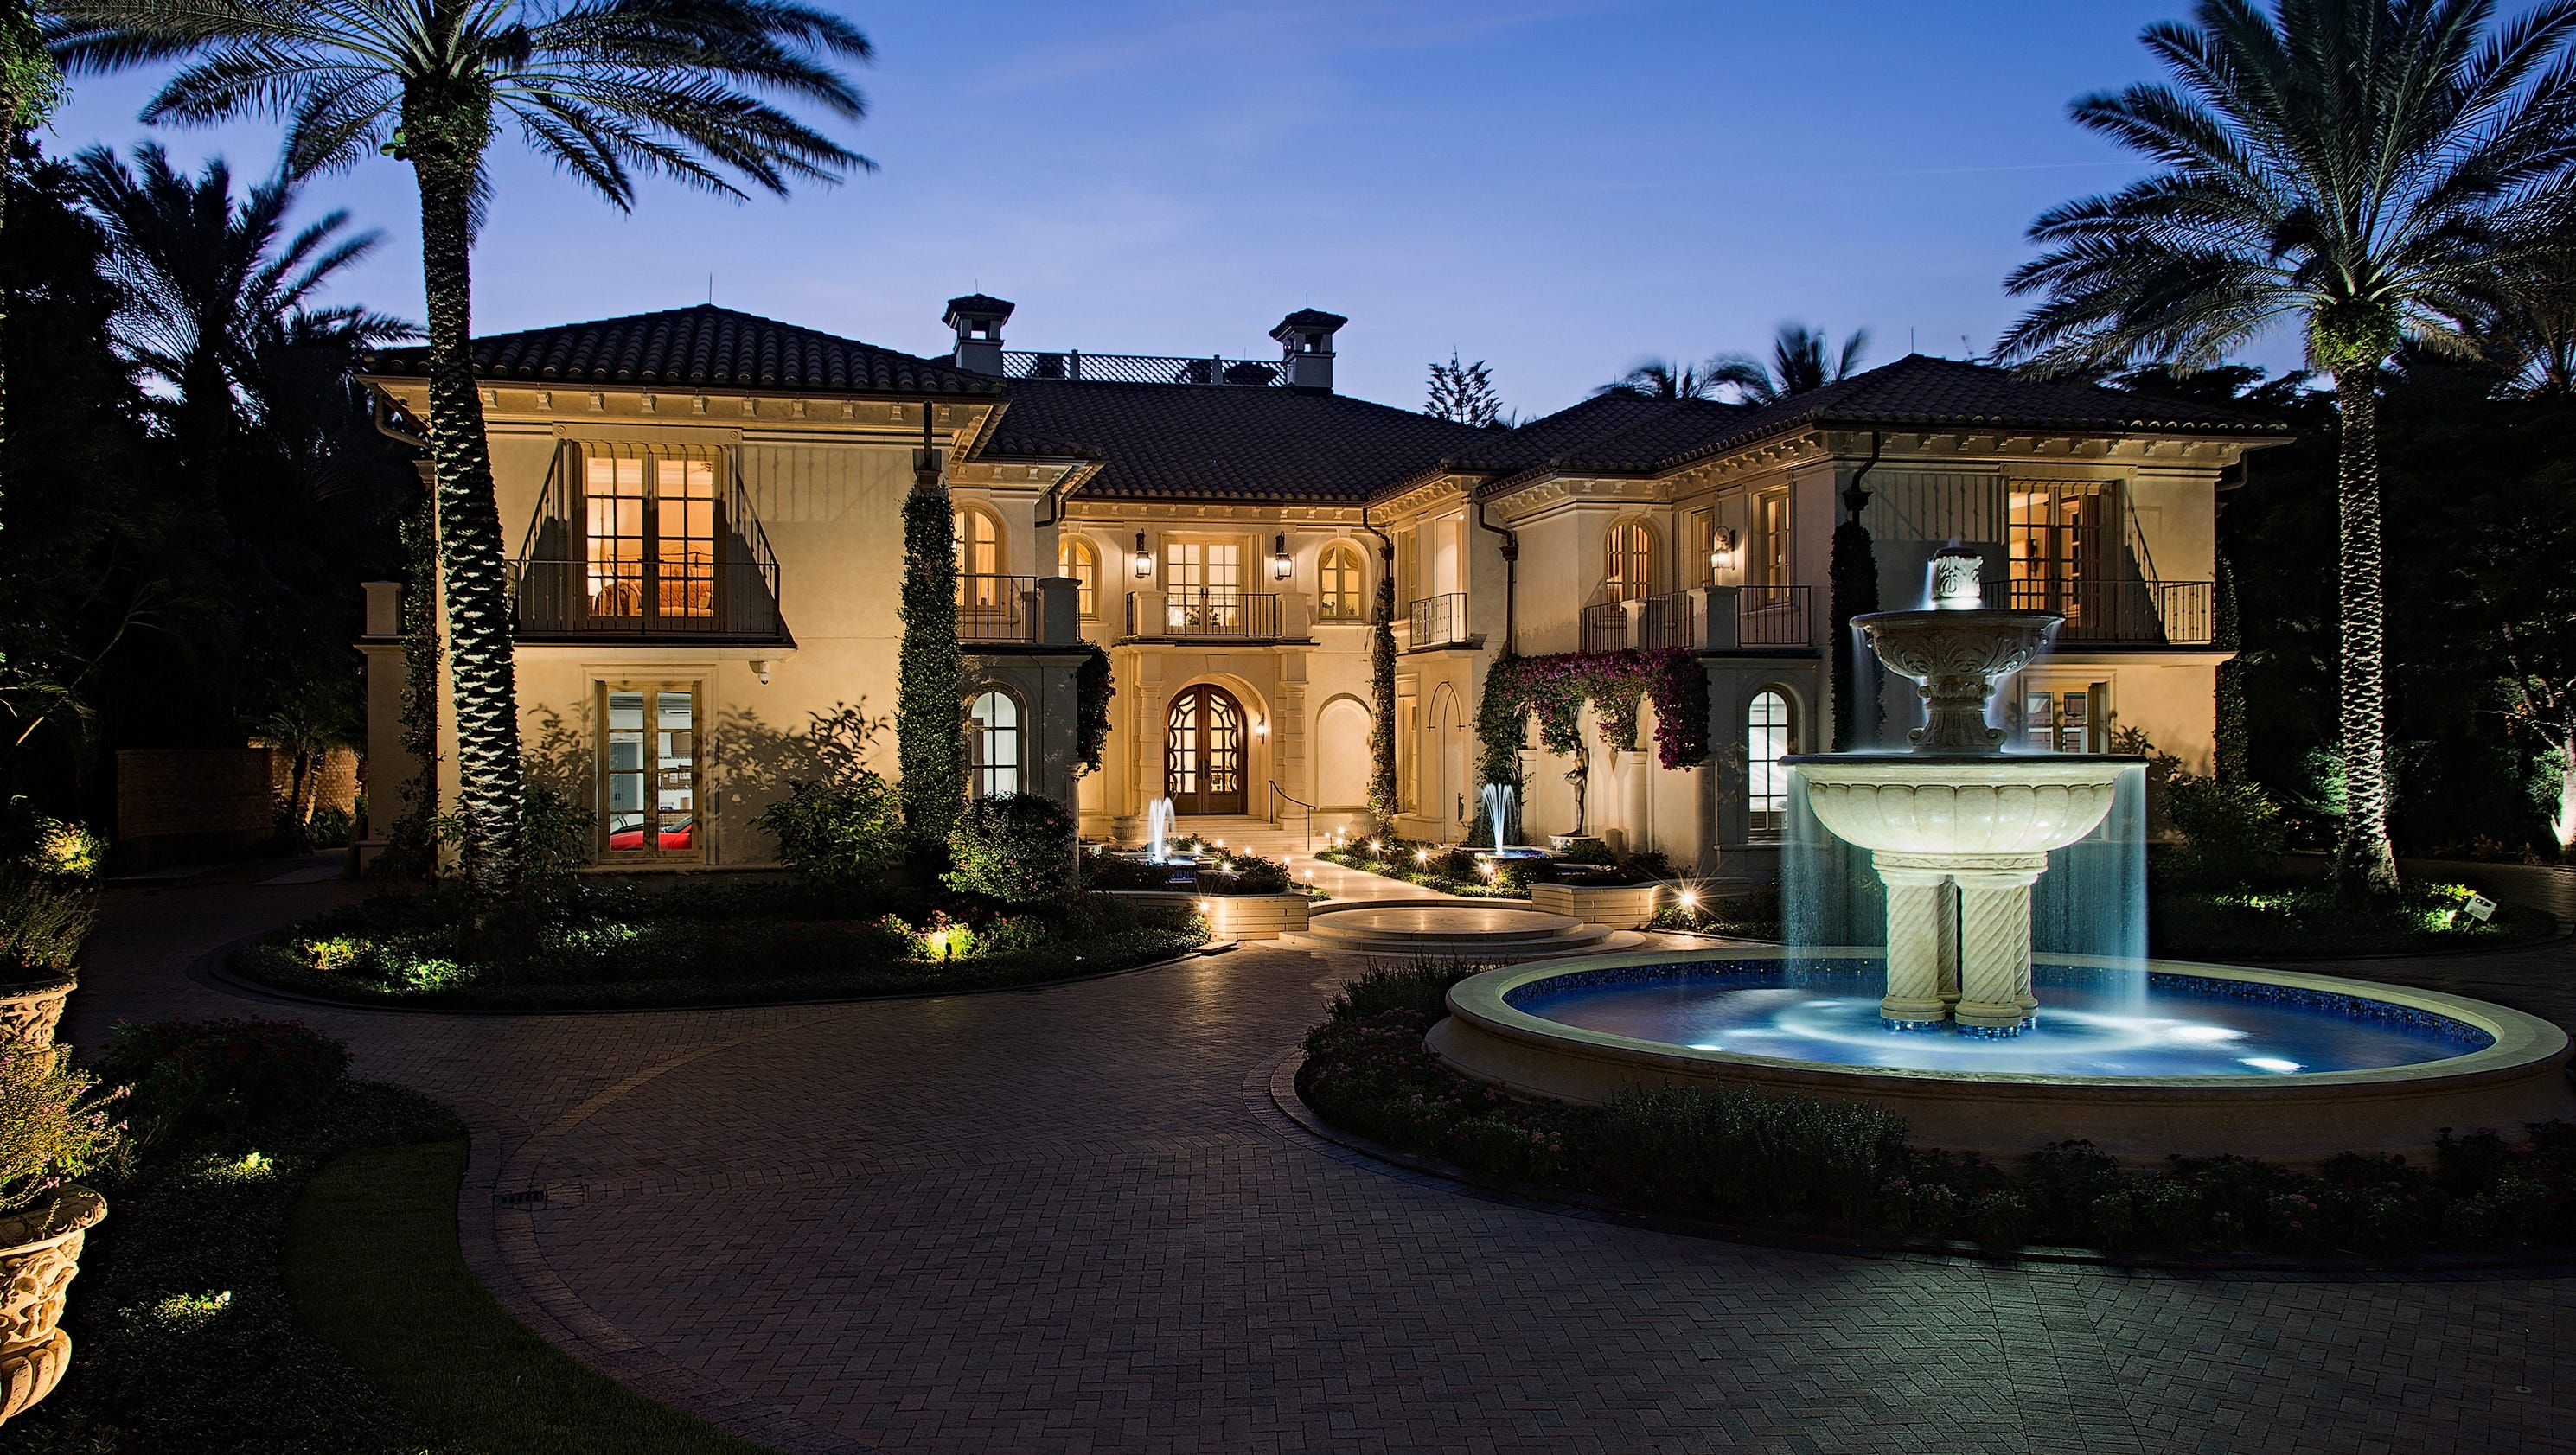 Two Gulf Front Mansions In Naples Among Priciest Homes For